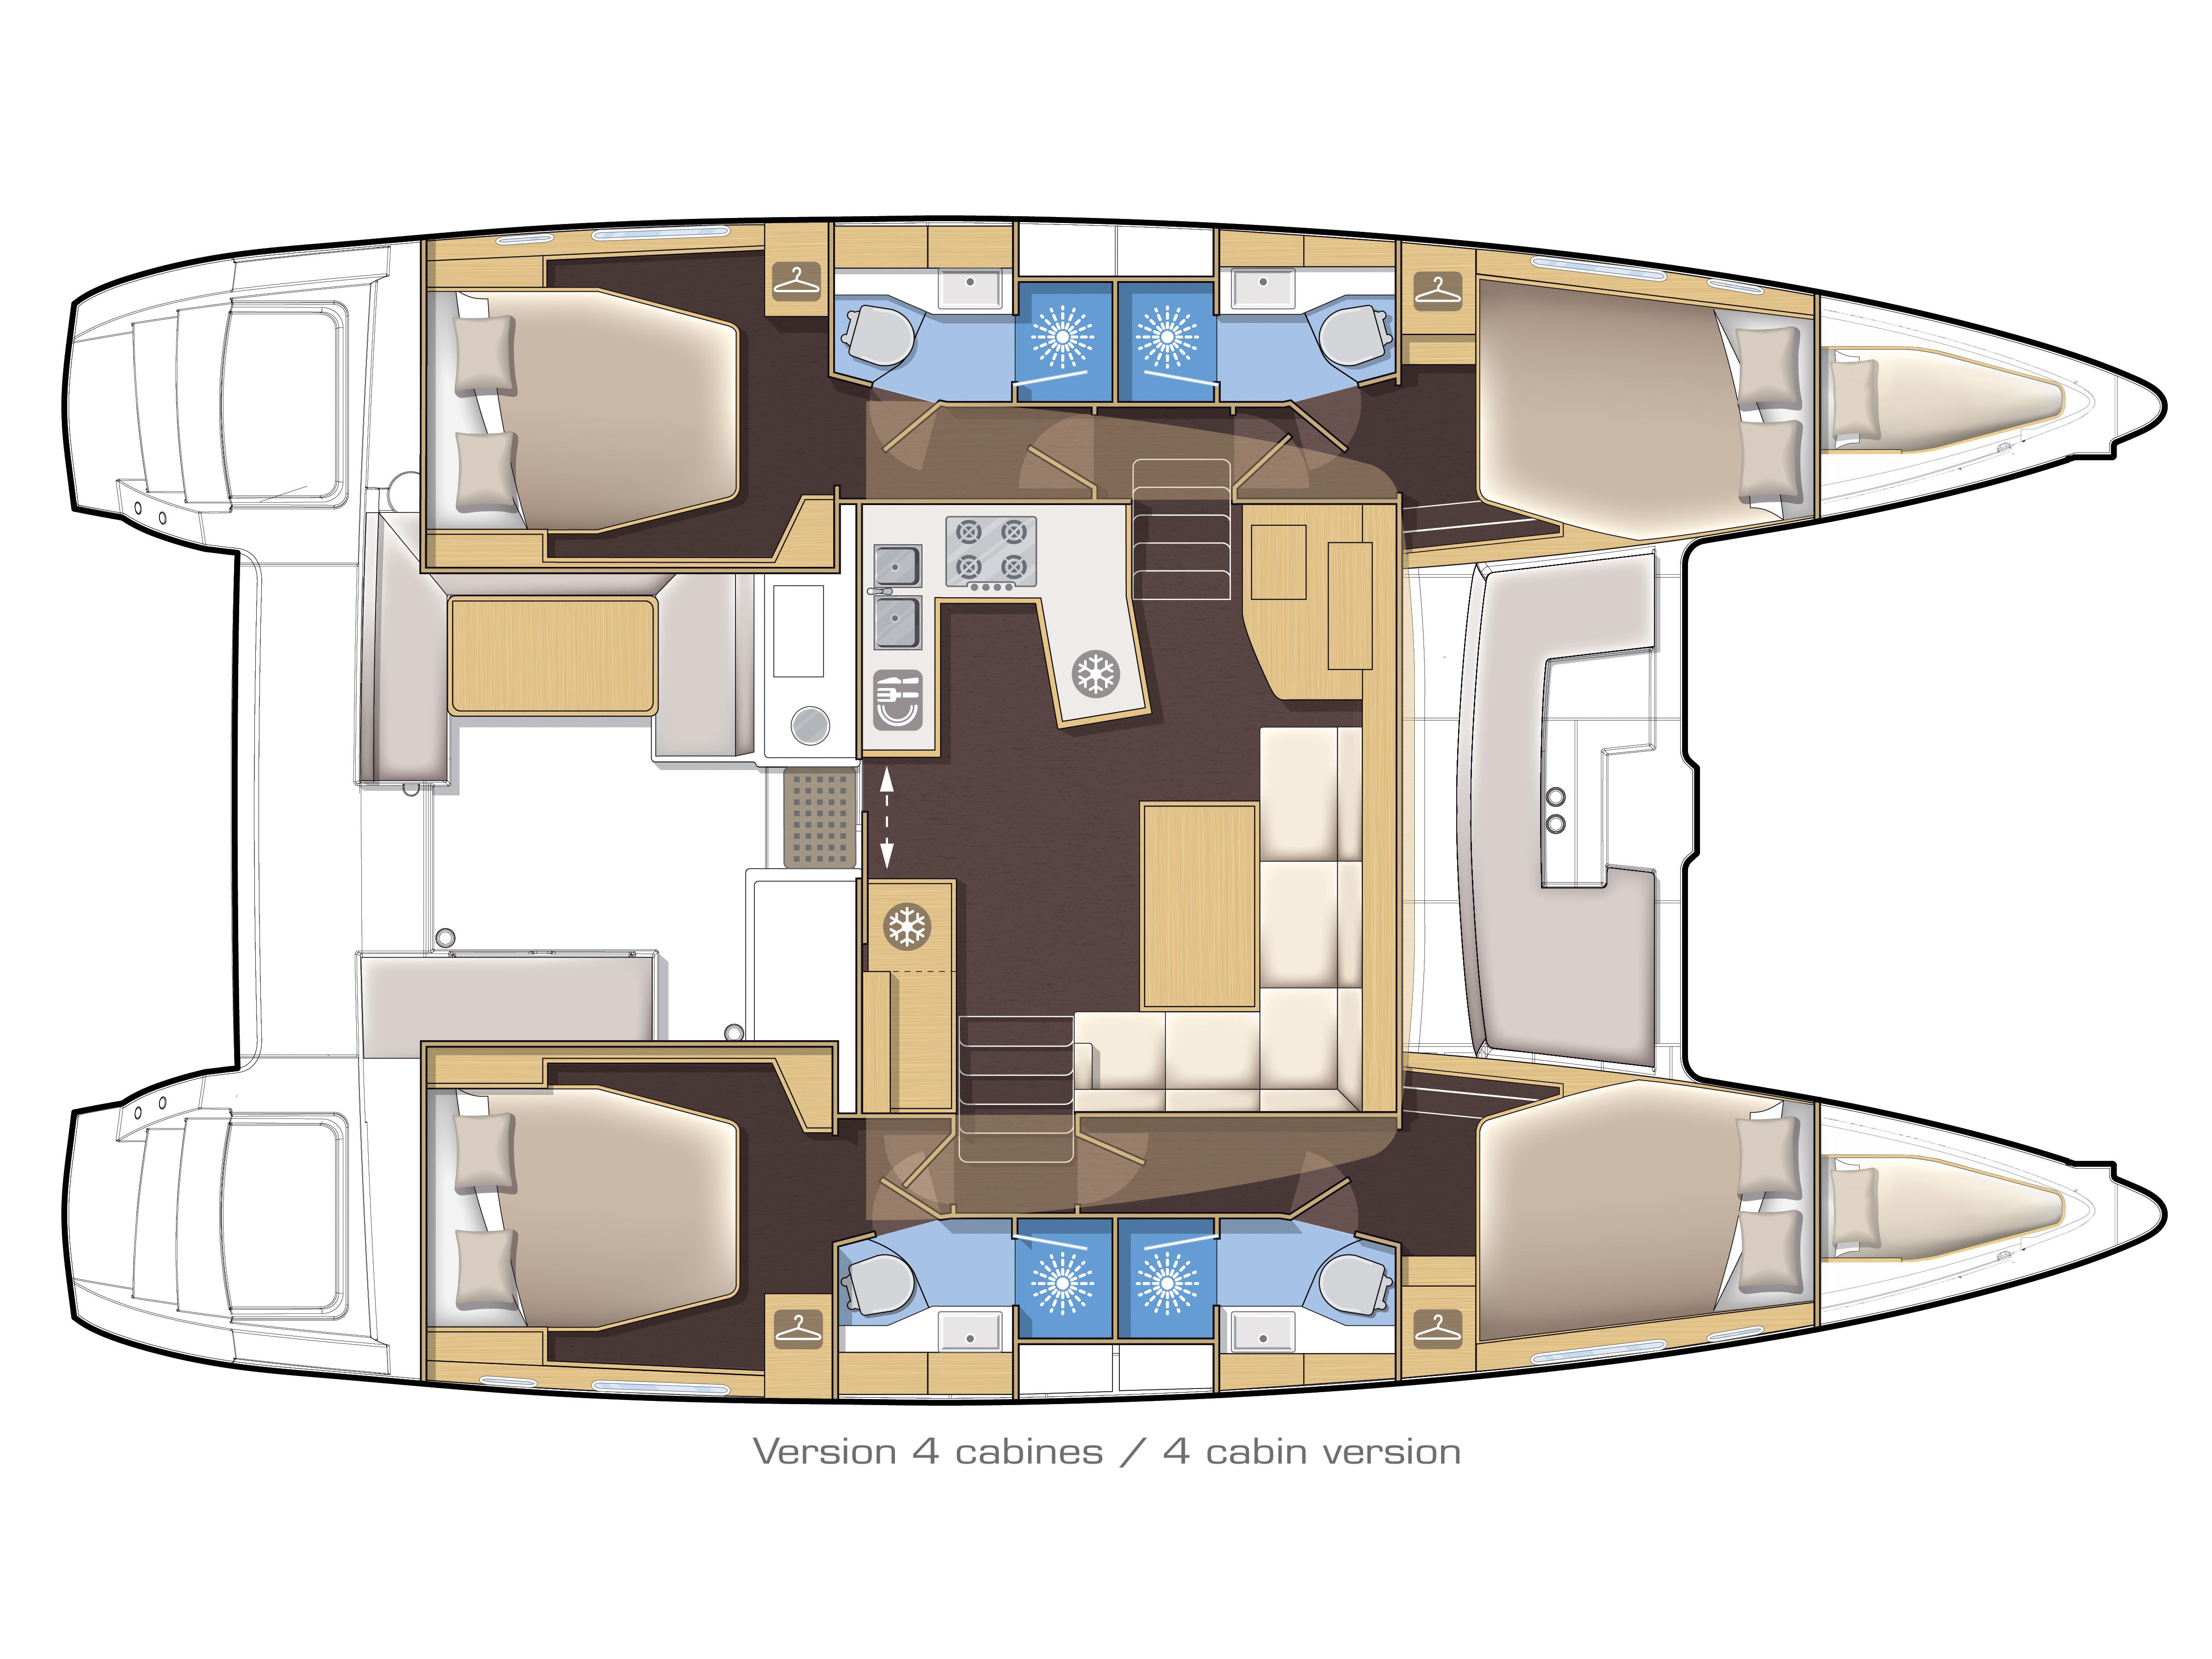 Lagoon 450 Sport LUX equipped with generator, A/C (PRINCESS SOFIA) Plan image - 14